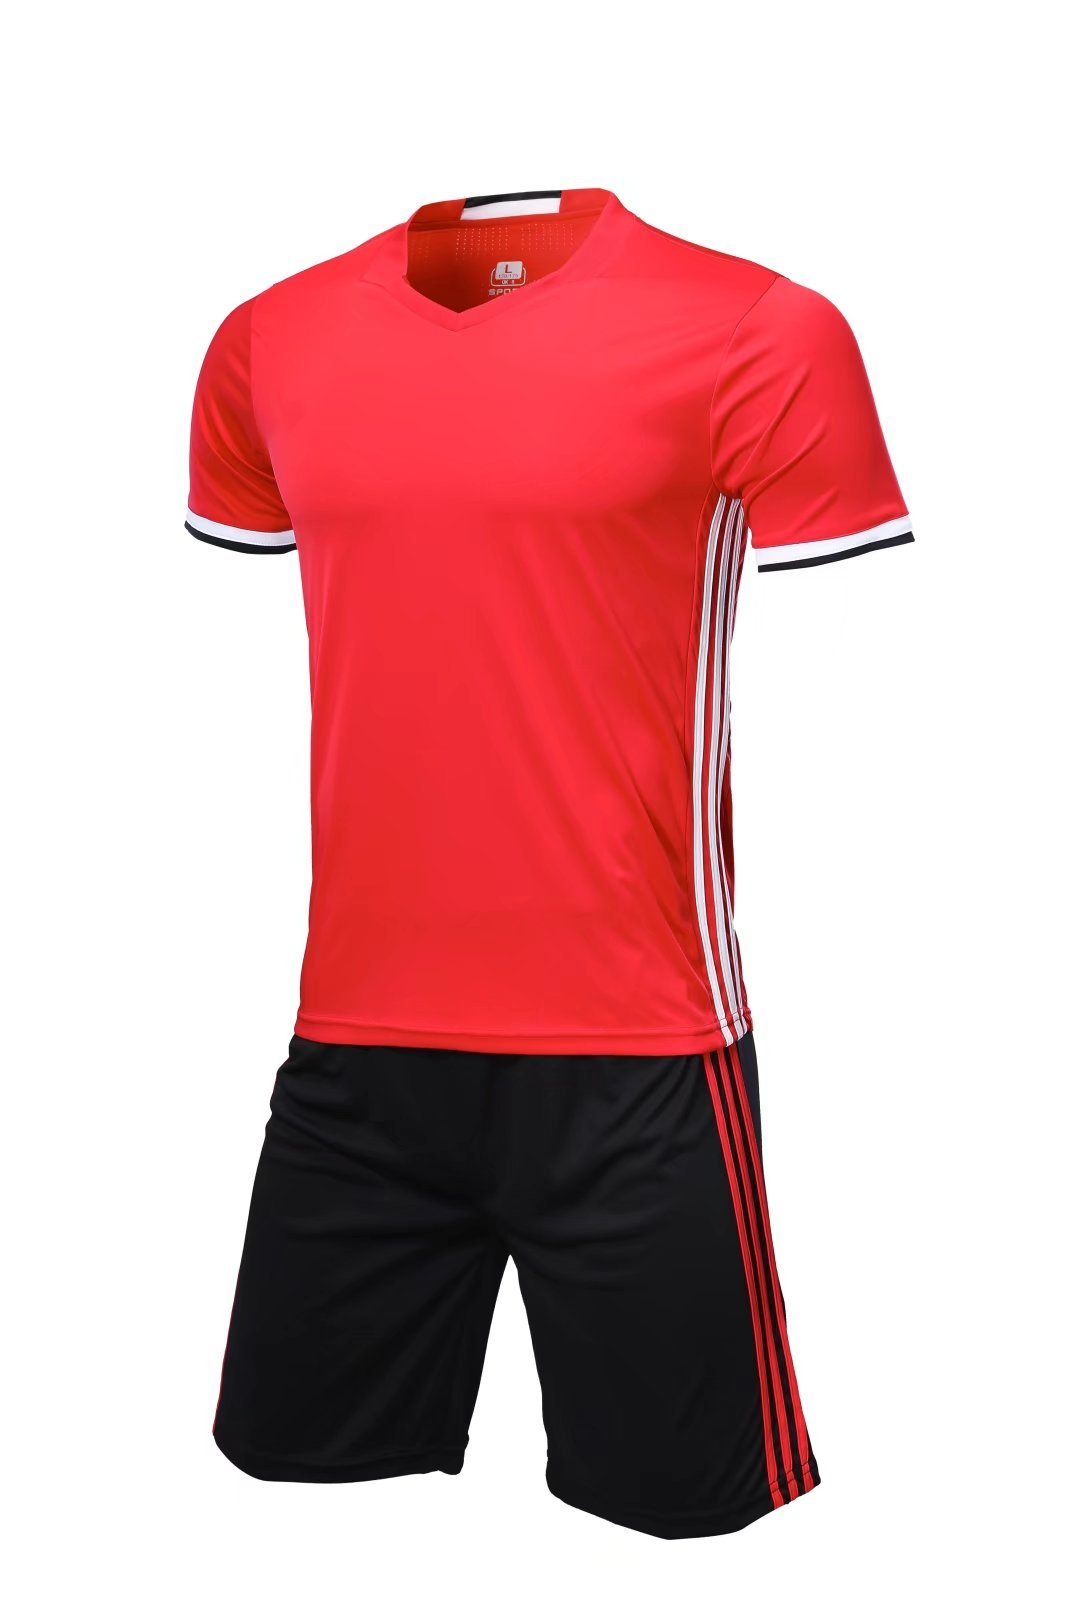 China 2018 Plain Black and Red Football Kits Photos   Pictures ... 03a0b908f373